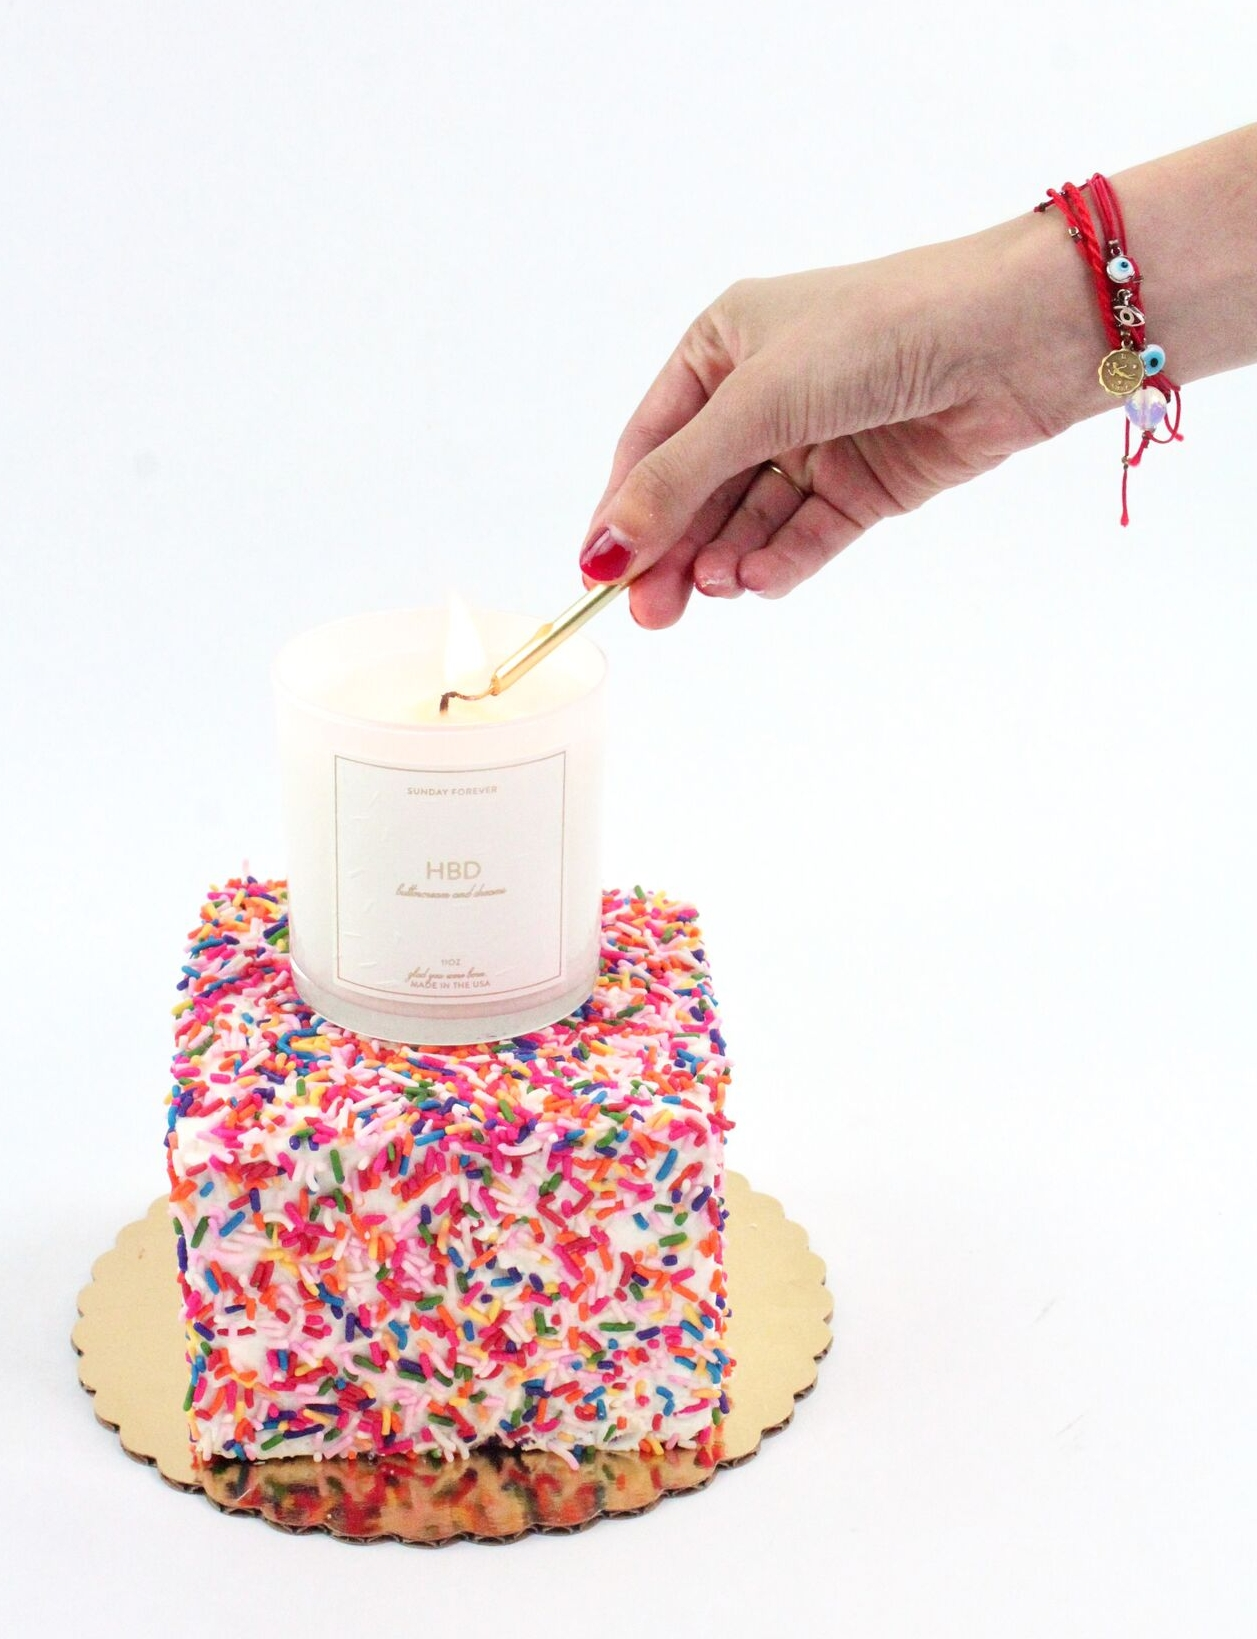 Sunday Forever HBD: Buttercream and Dreams The Sunday Issue